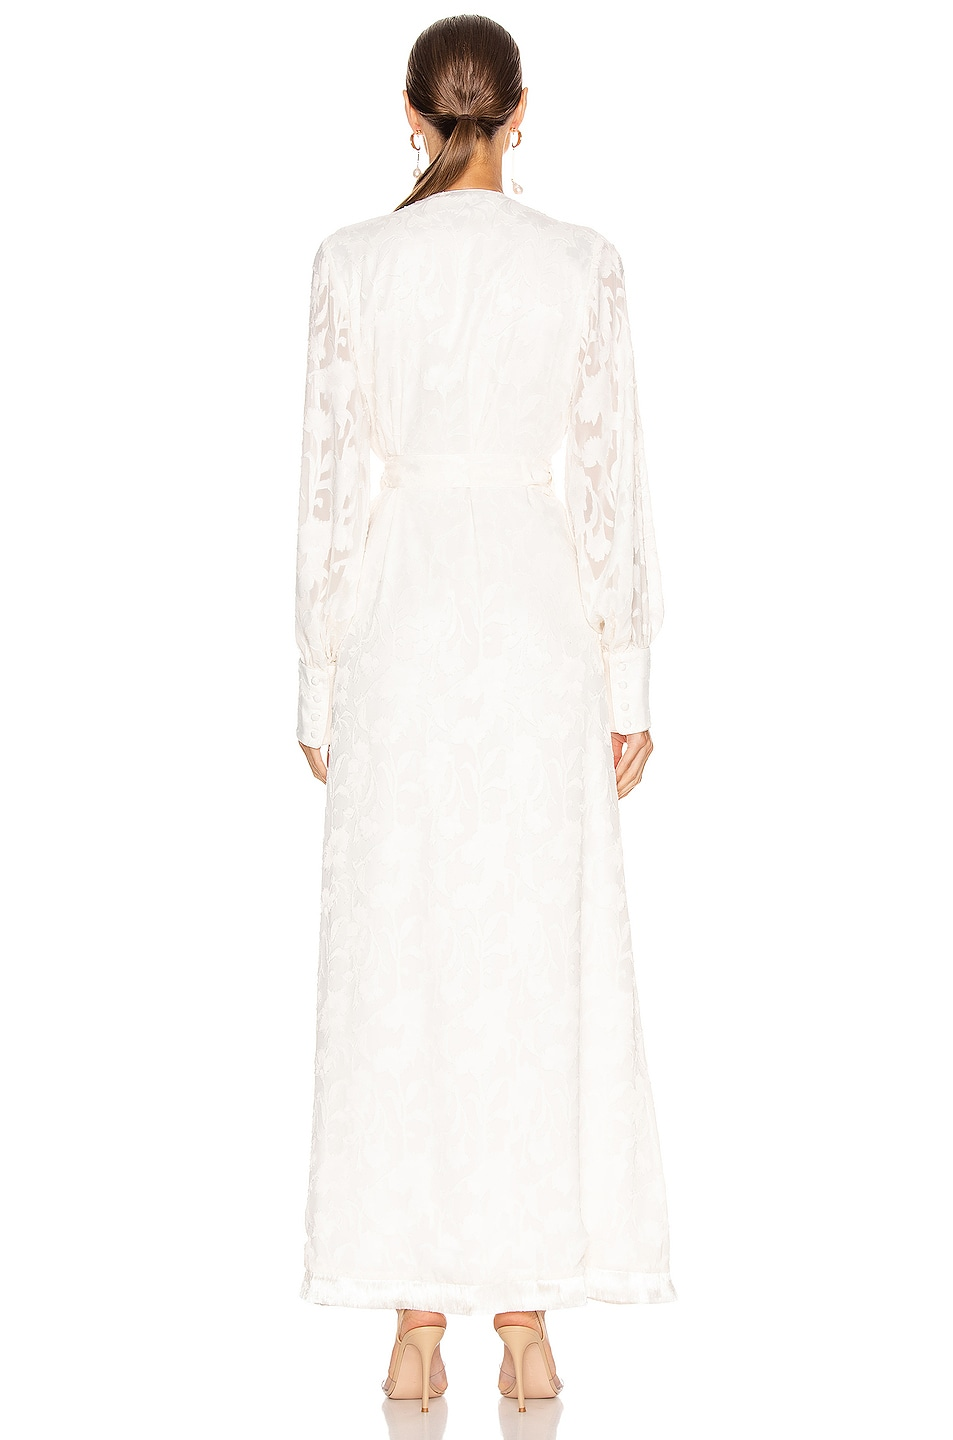 Image 4 of Alexis Antonella Dress in Ivory Floral